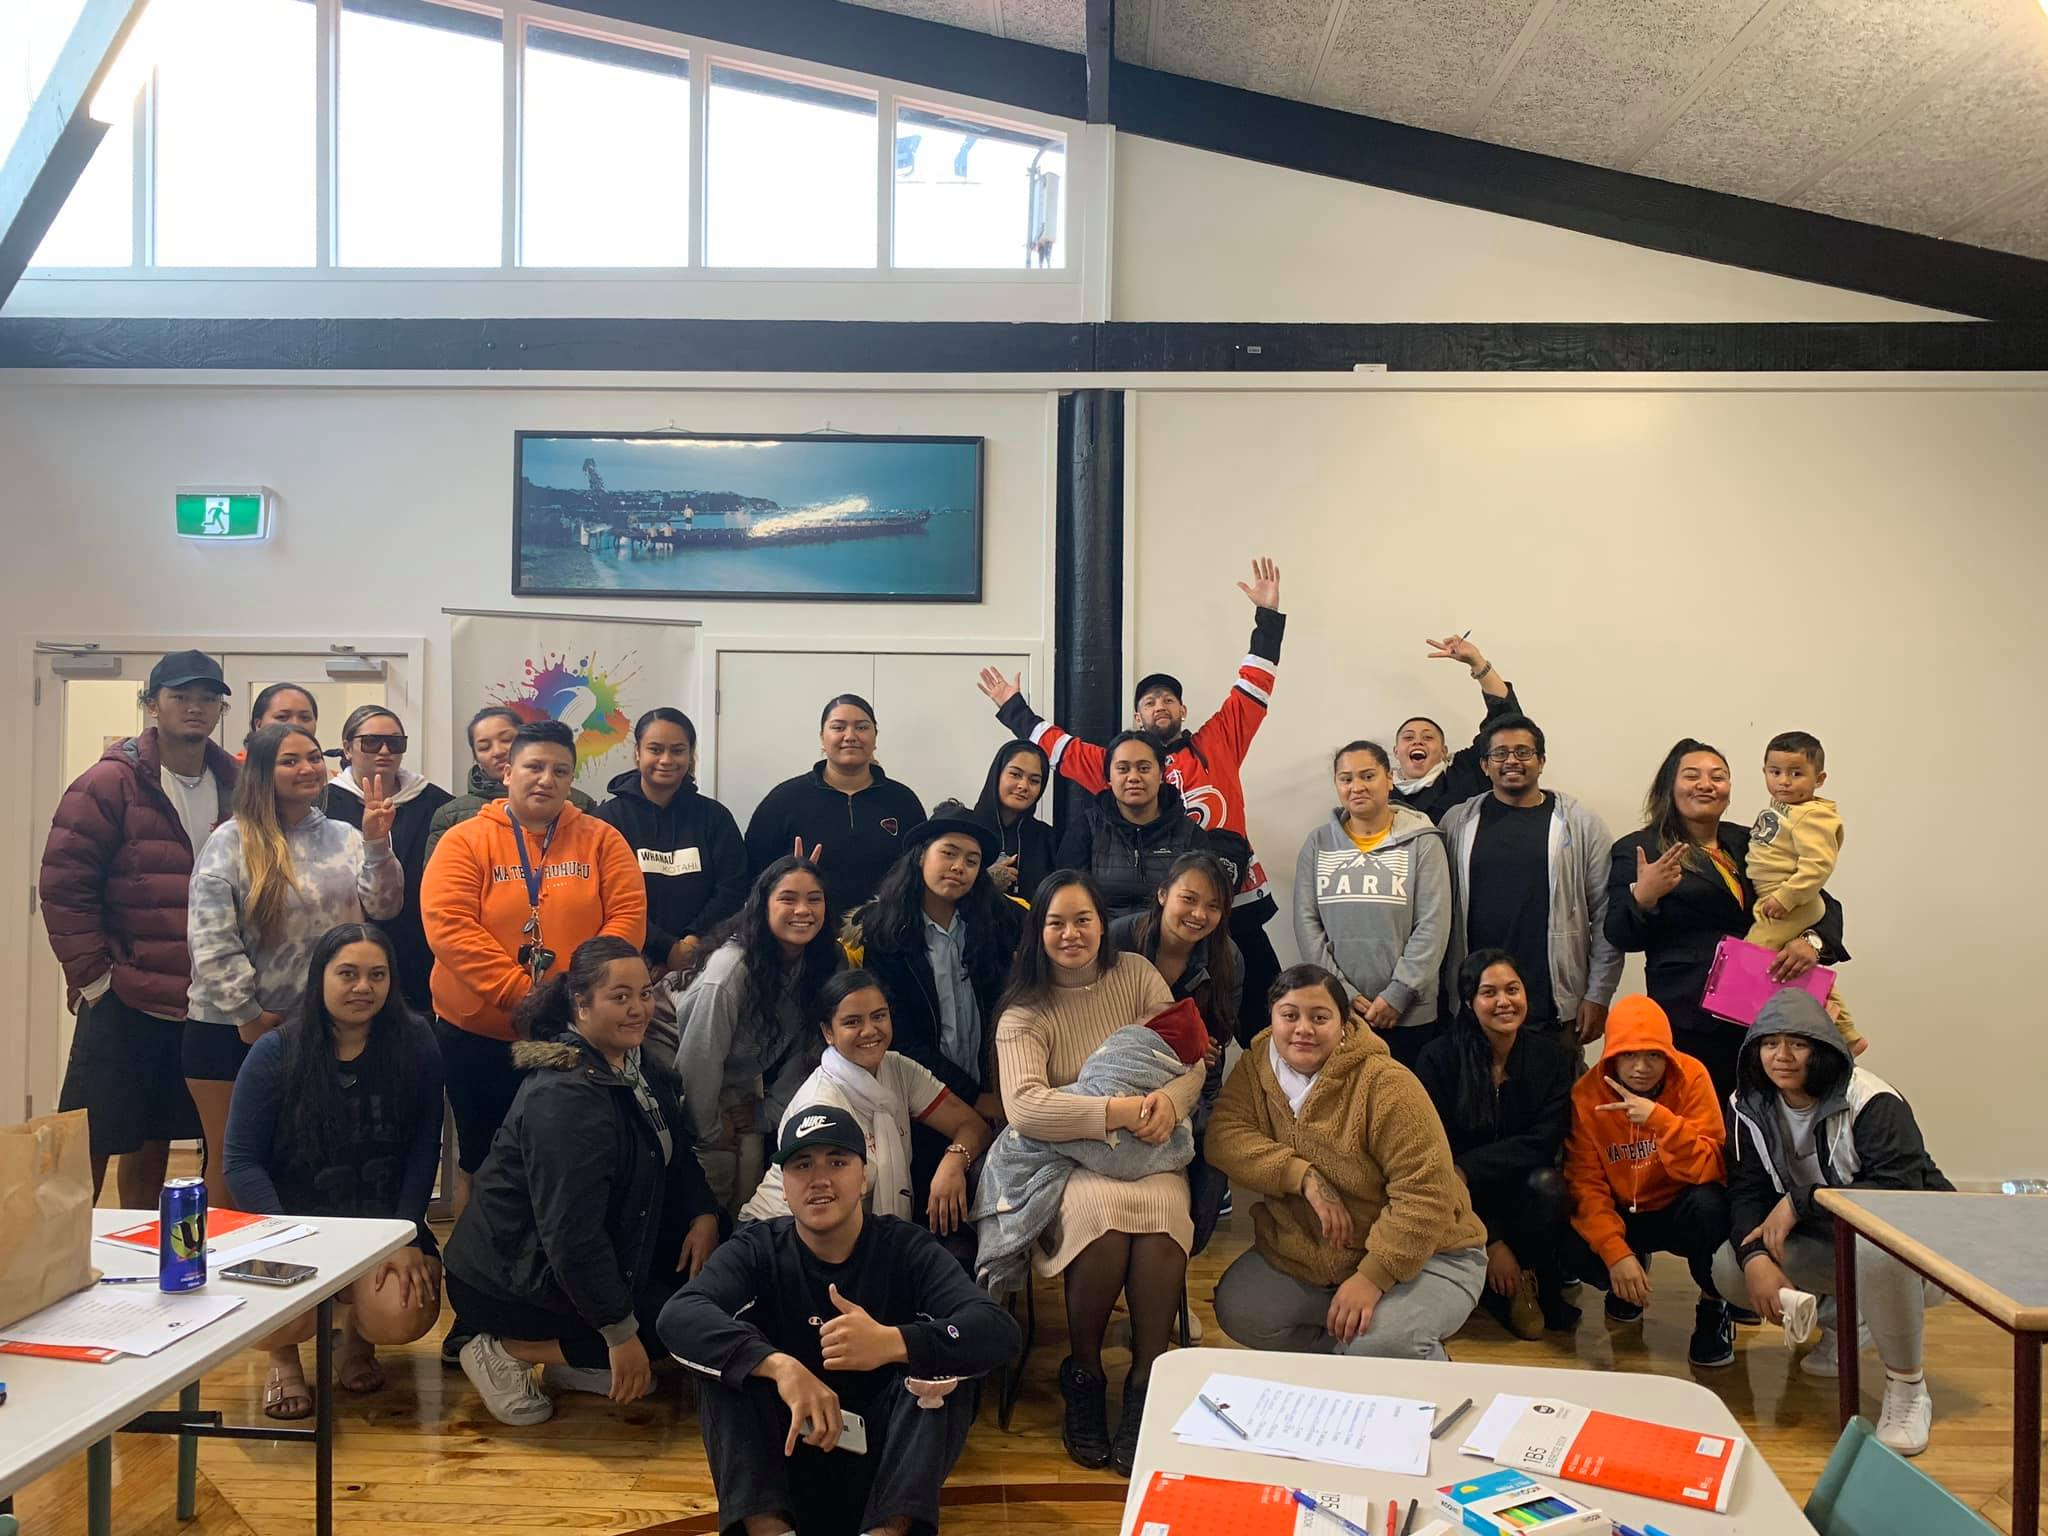 Māori rangatahi empowered to check in on their mental health and wellbeing | UOA